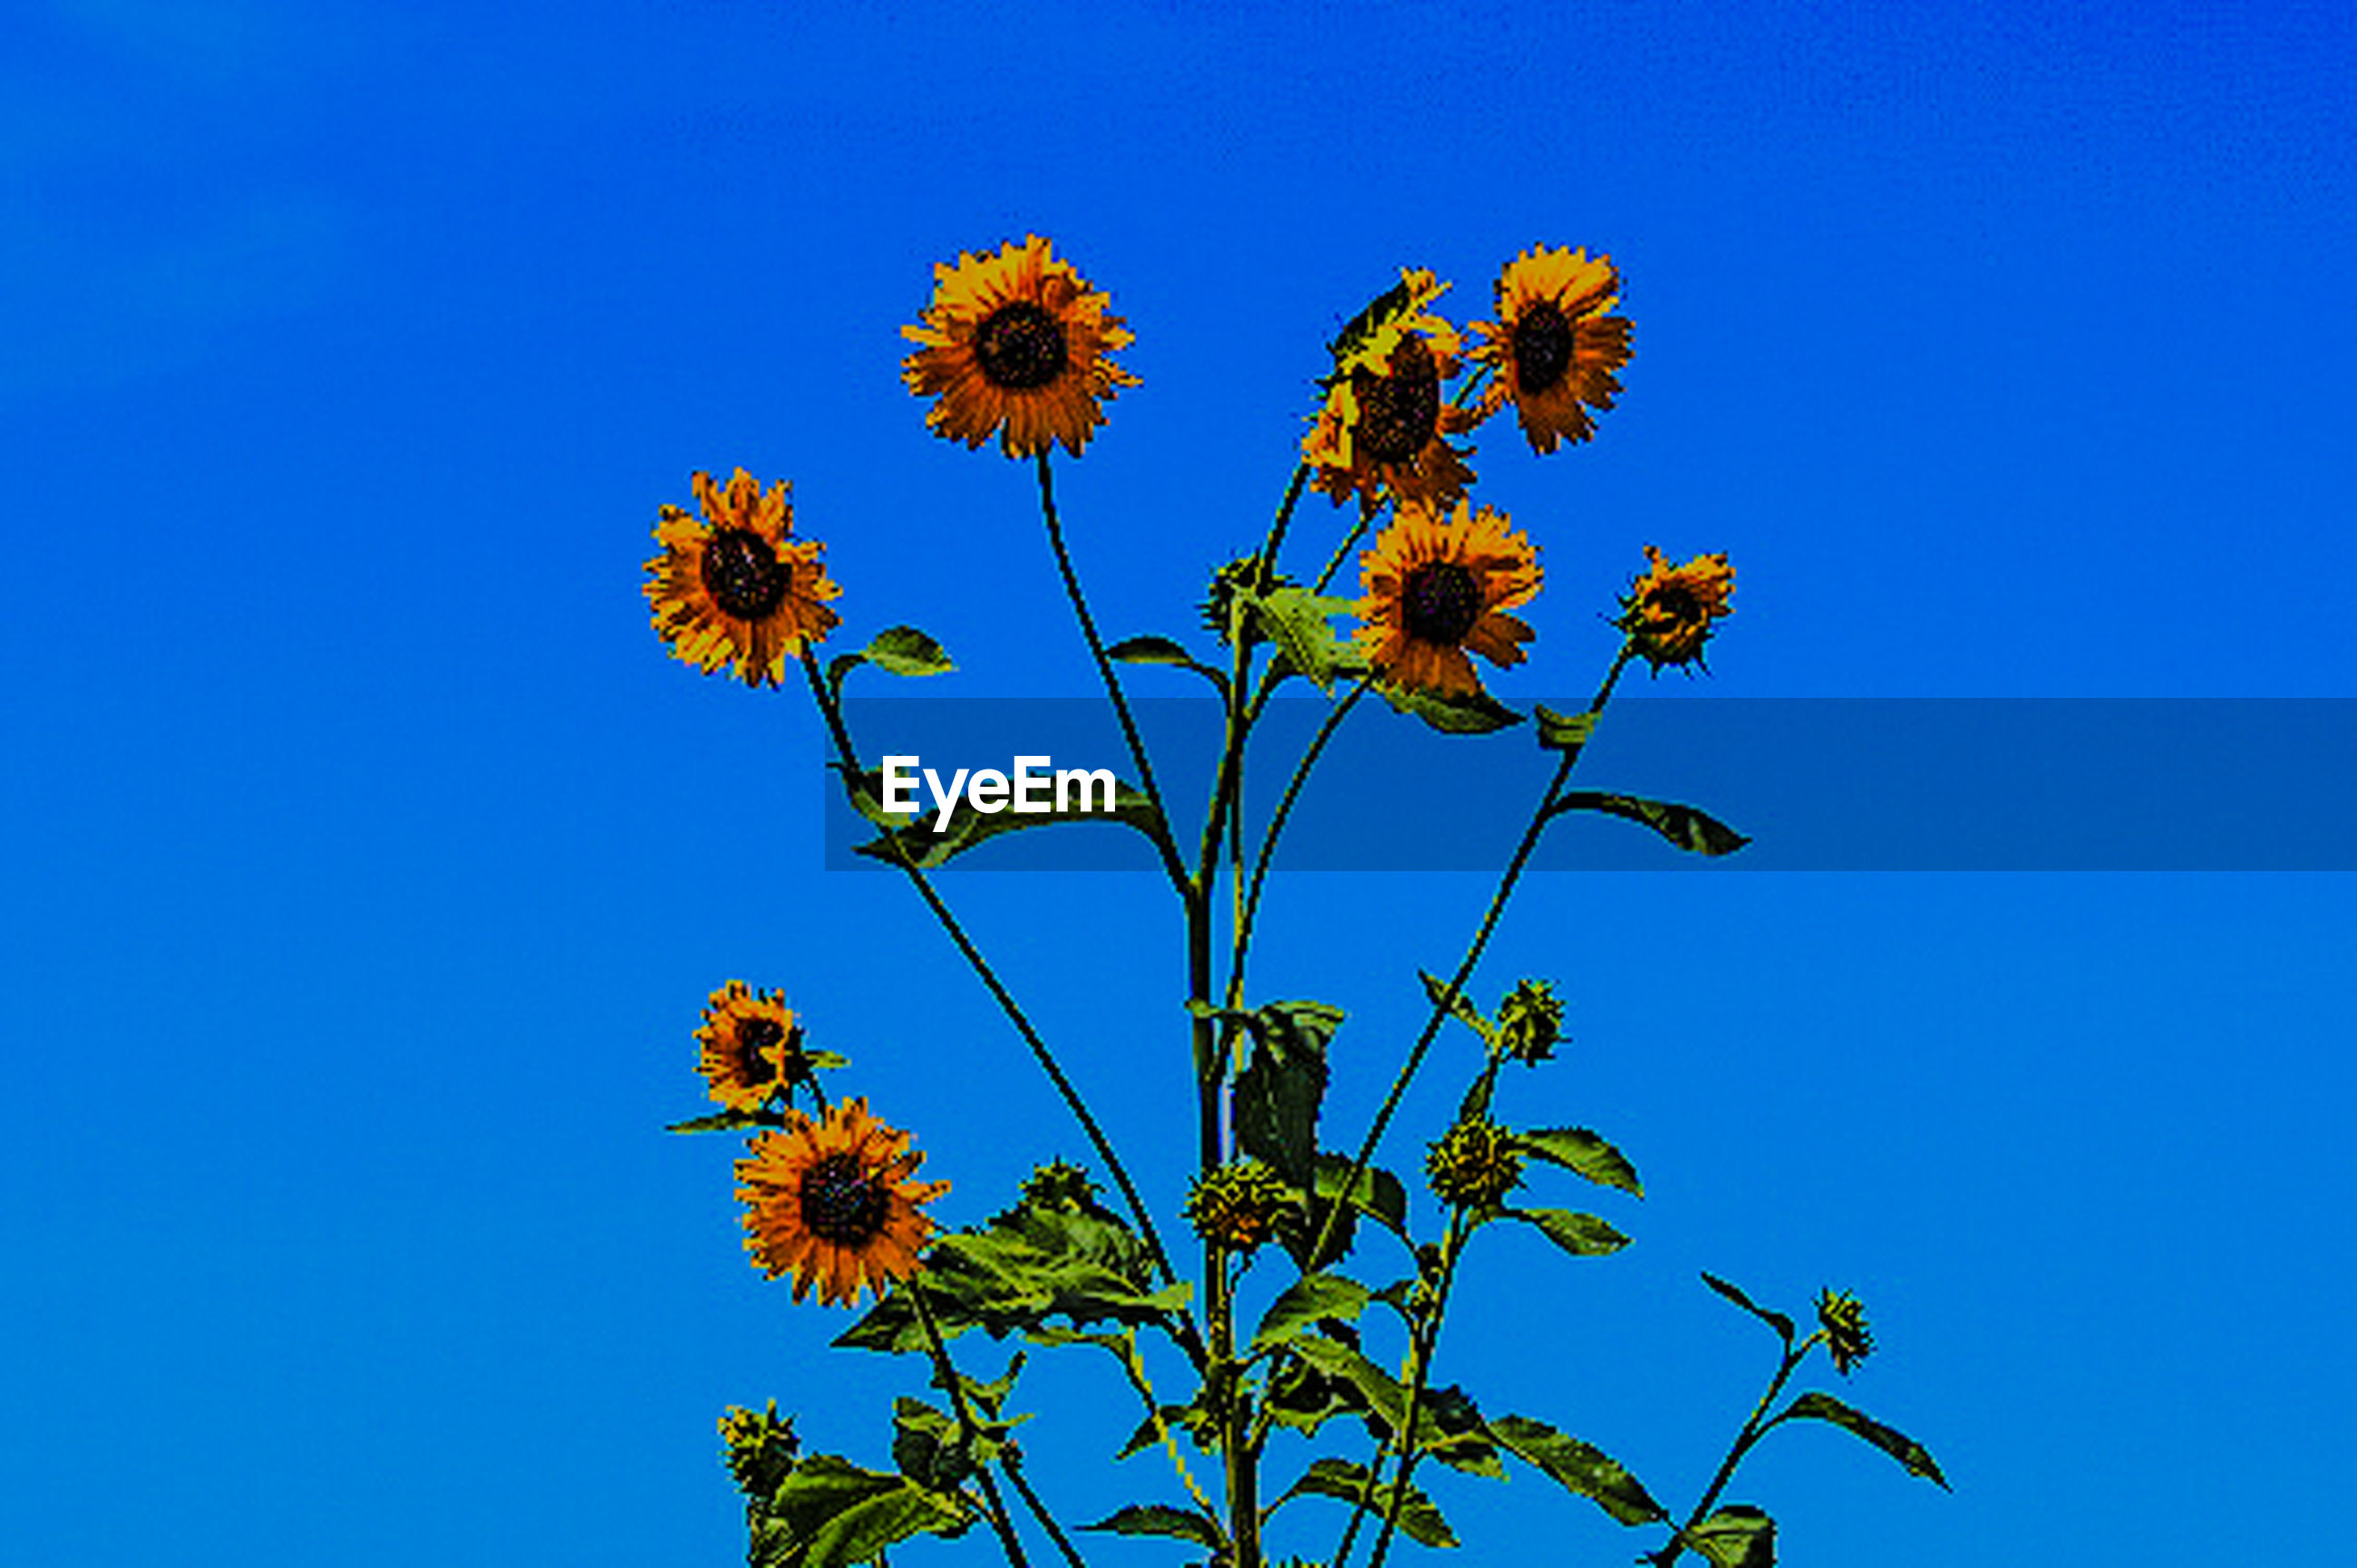 LOW ANGLE VIEW OF YELLOW FLOWERS BLOOMING AGAINST CLEAR BLUE SKY